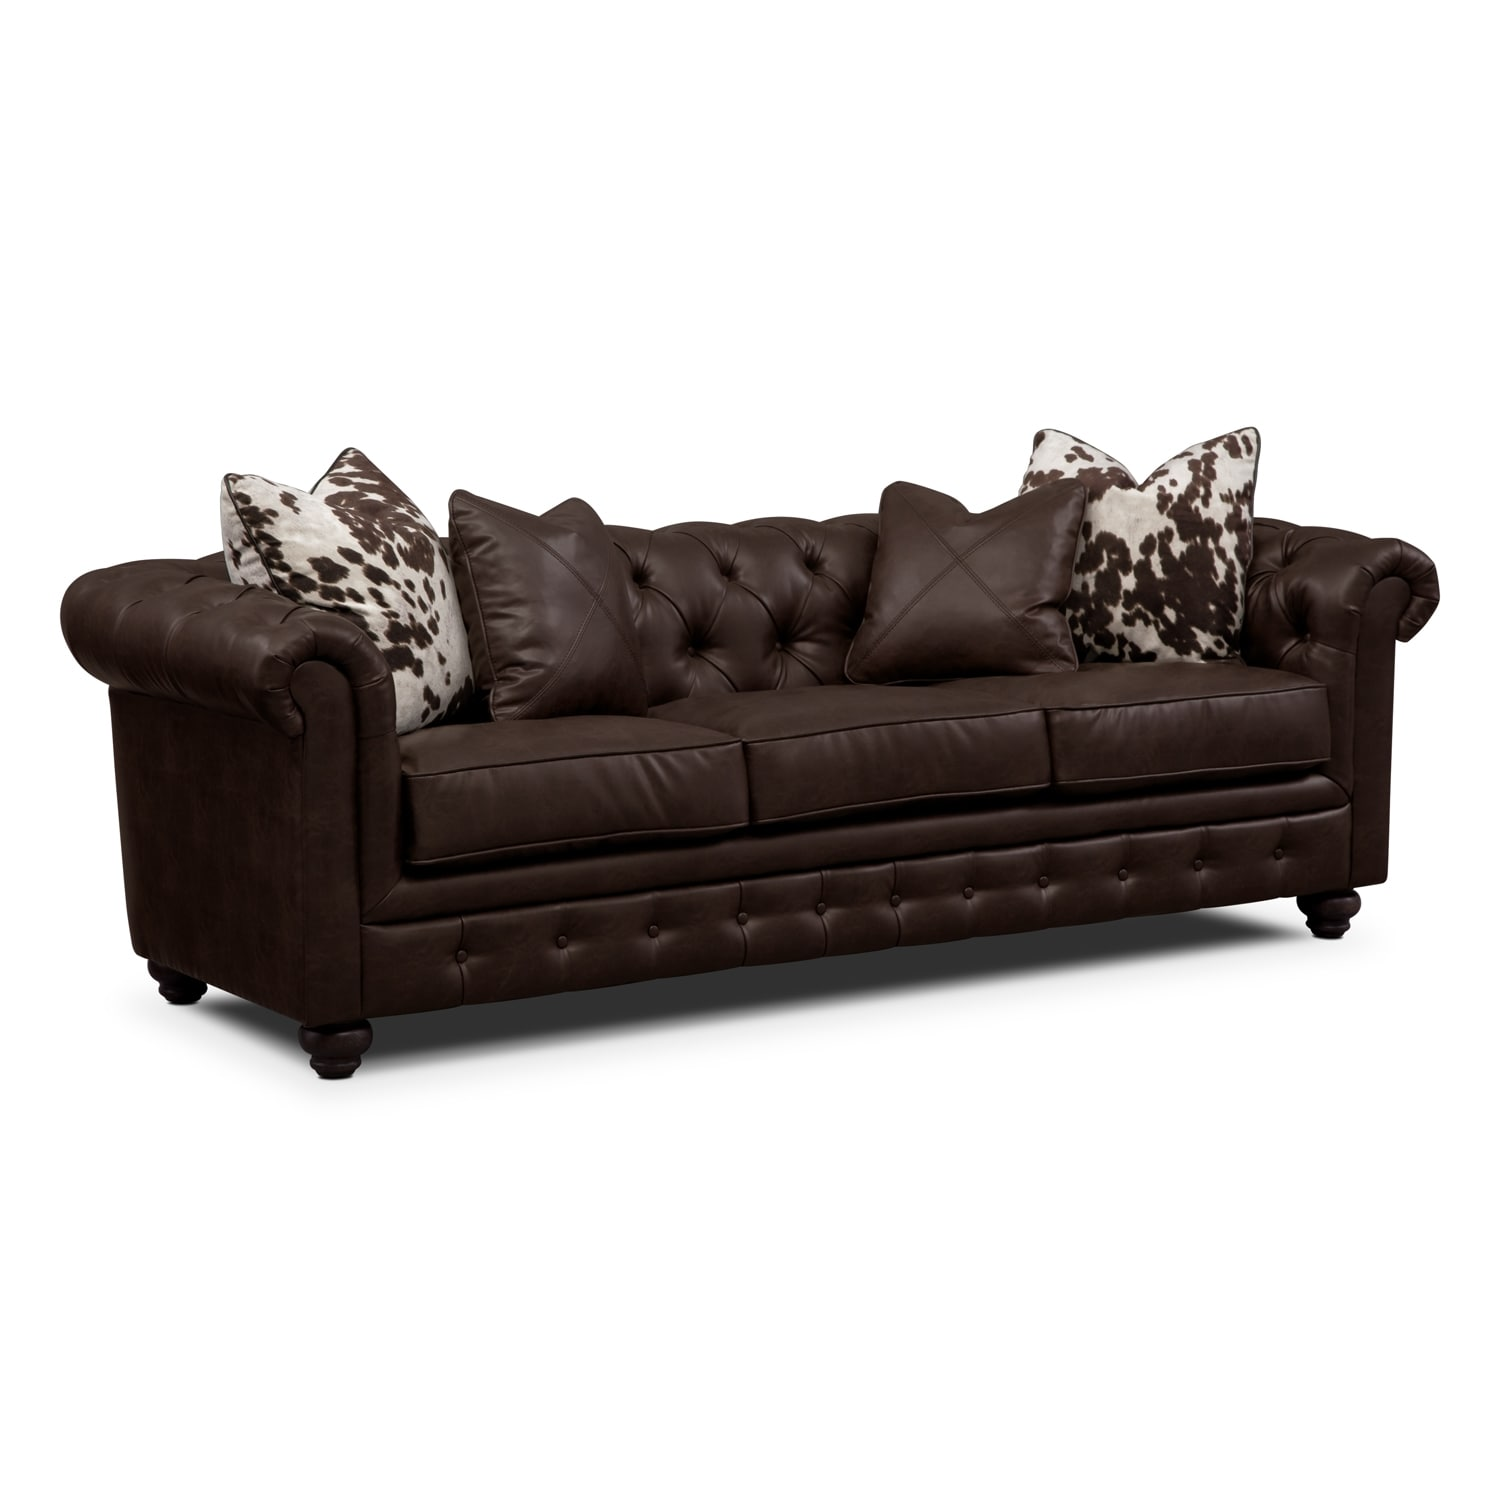 Living Room Furniture - Madeline Sofa - Chocolate